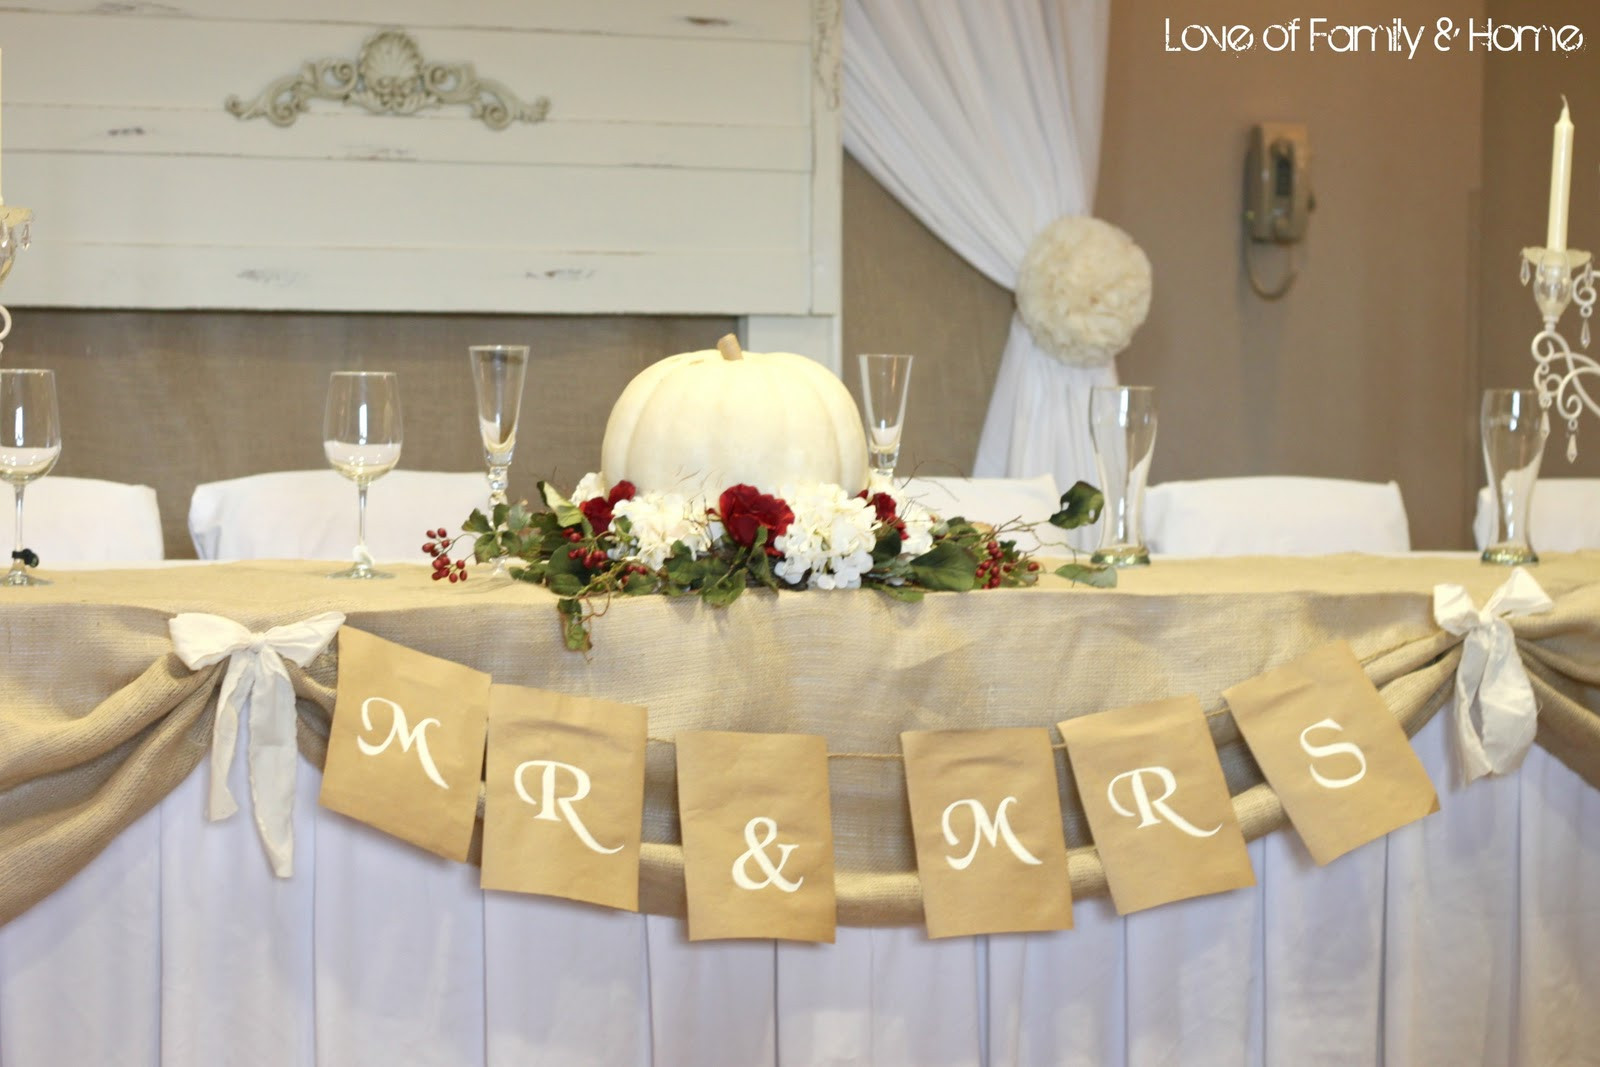 Best ideas about DIY Wedding Table Decorations . Save or Pin DIY Wedding Word Banners Love of Family & Home Now.